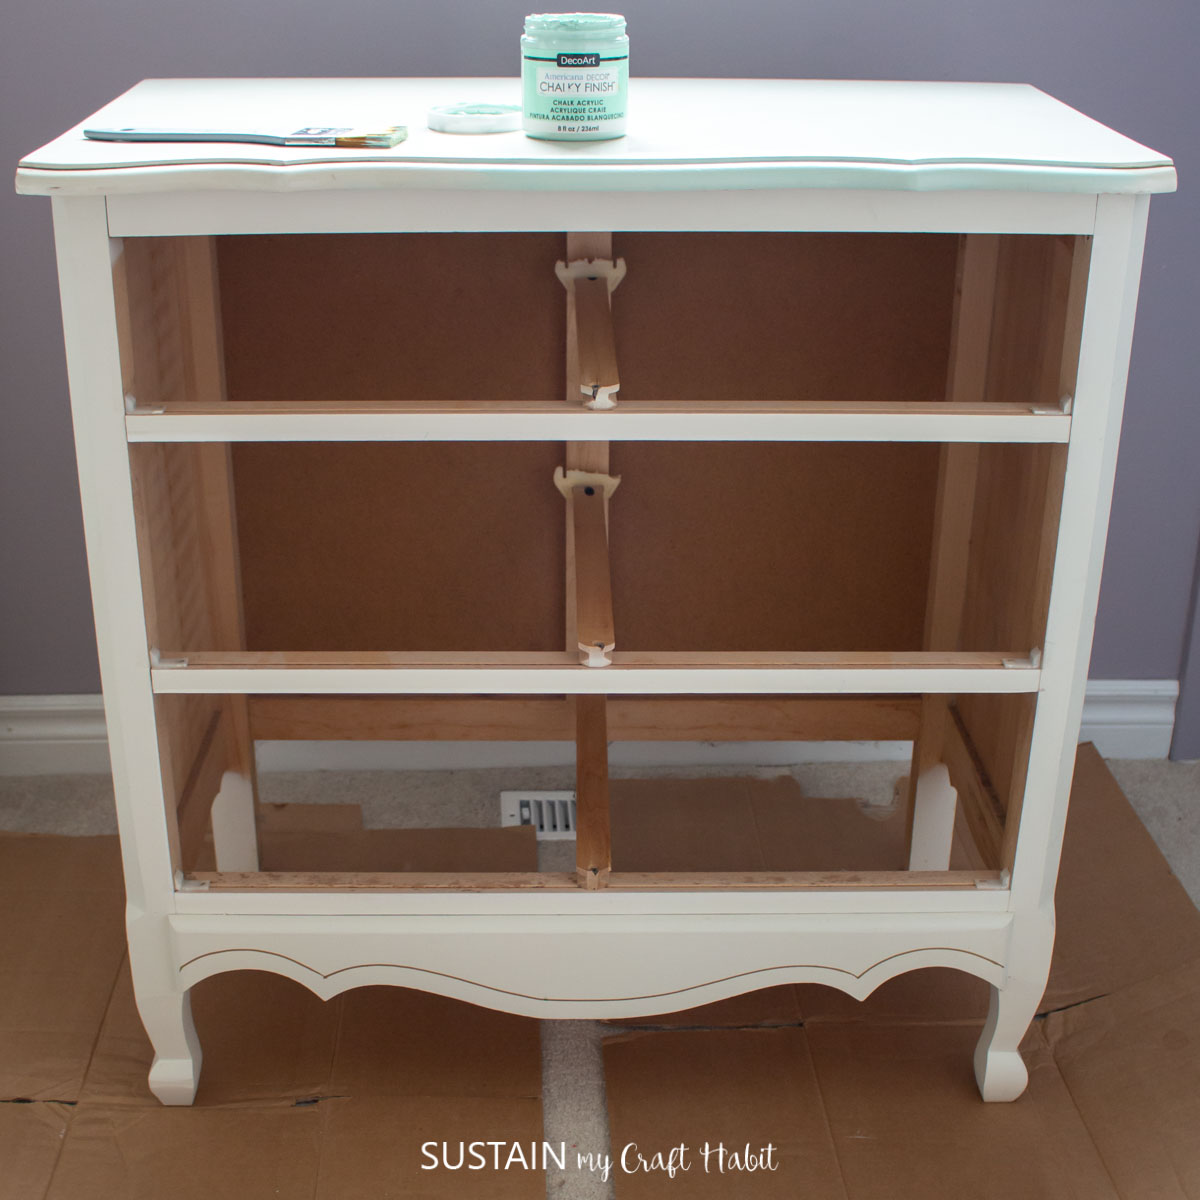 Starting the modern french country furniture makeover by painting the dresser with green paint.